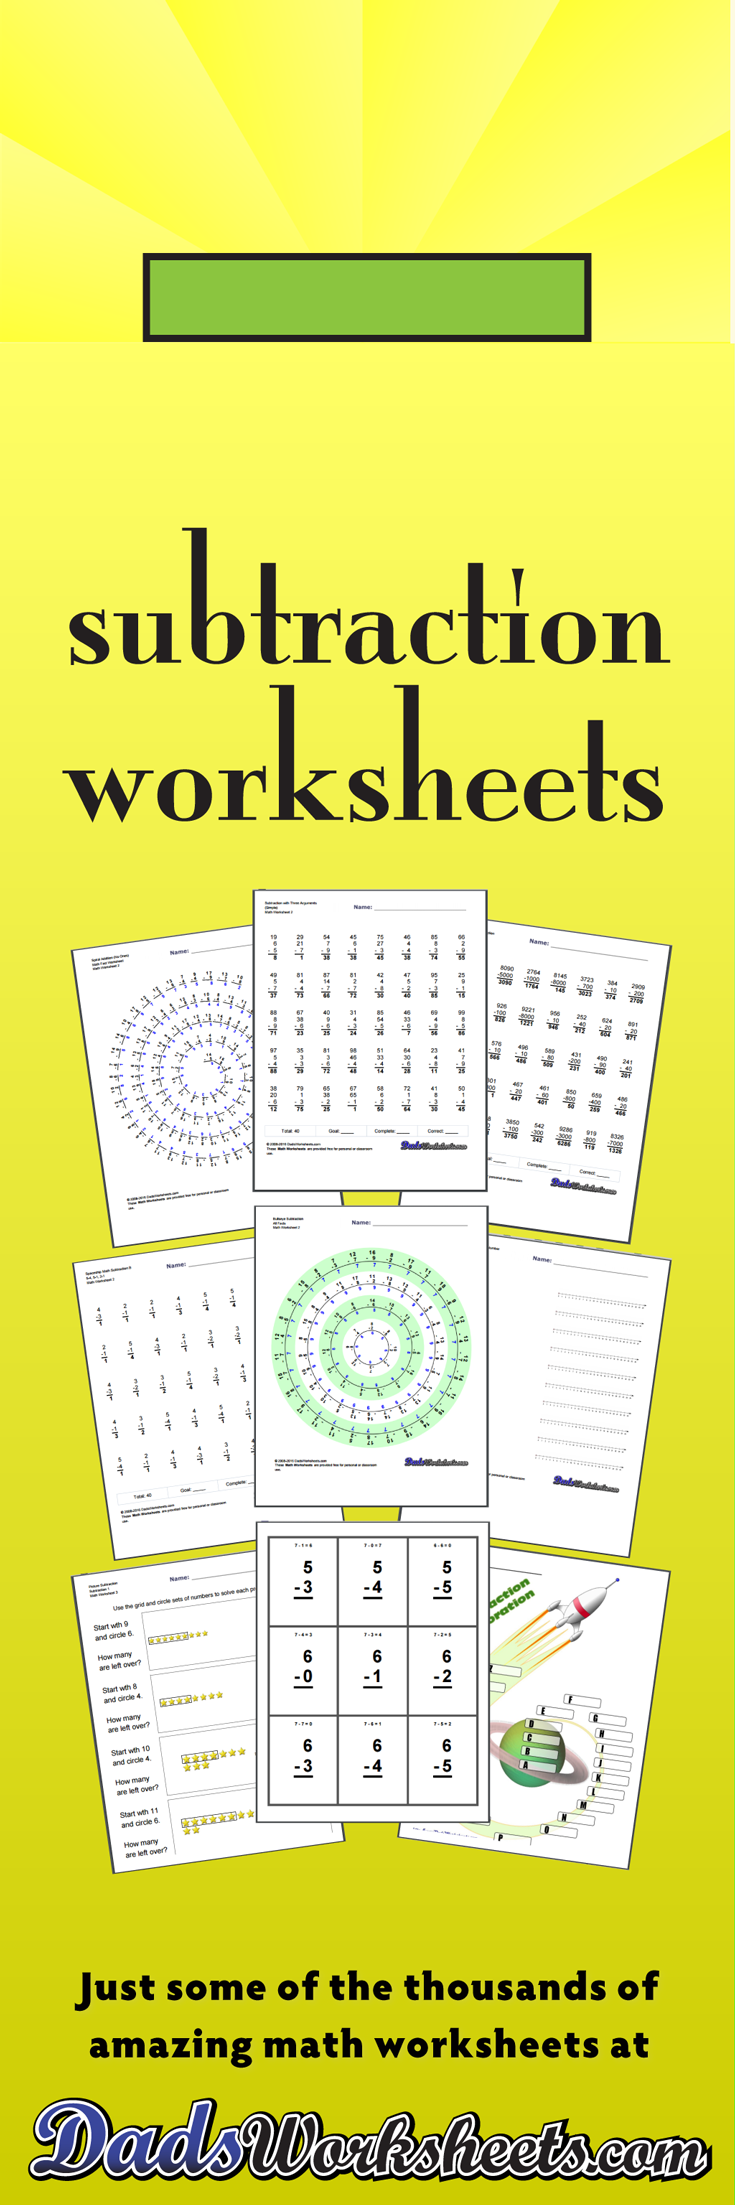 worksheet Addition And Subtraction Practice 464 subtraction worksheets for you to print right now worksheets